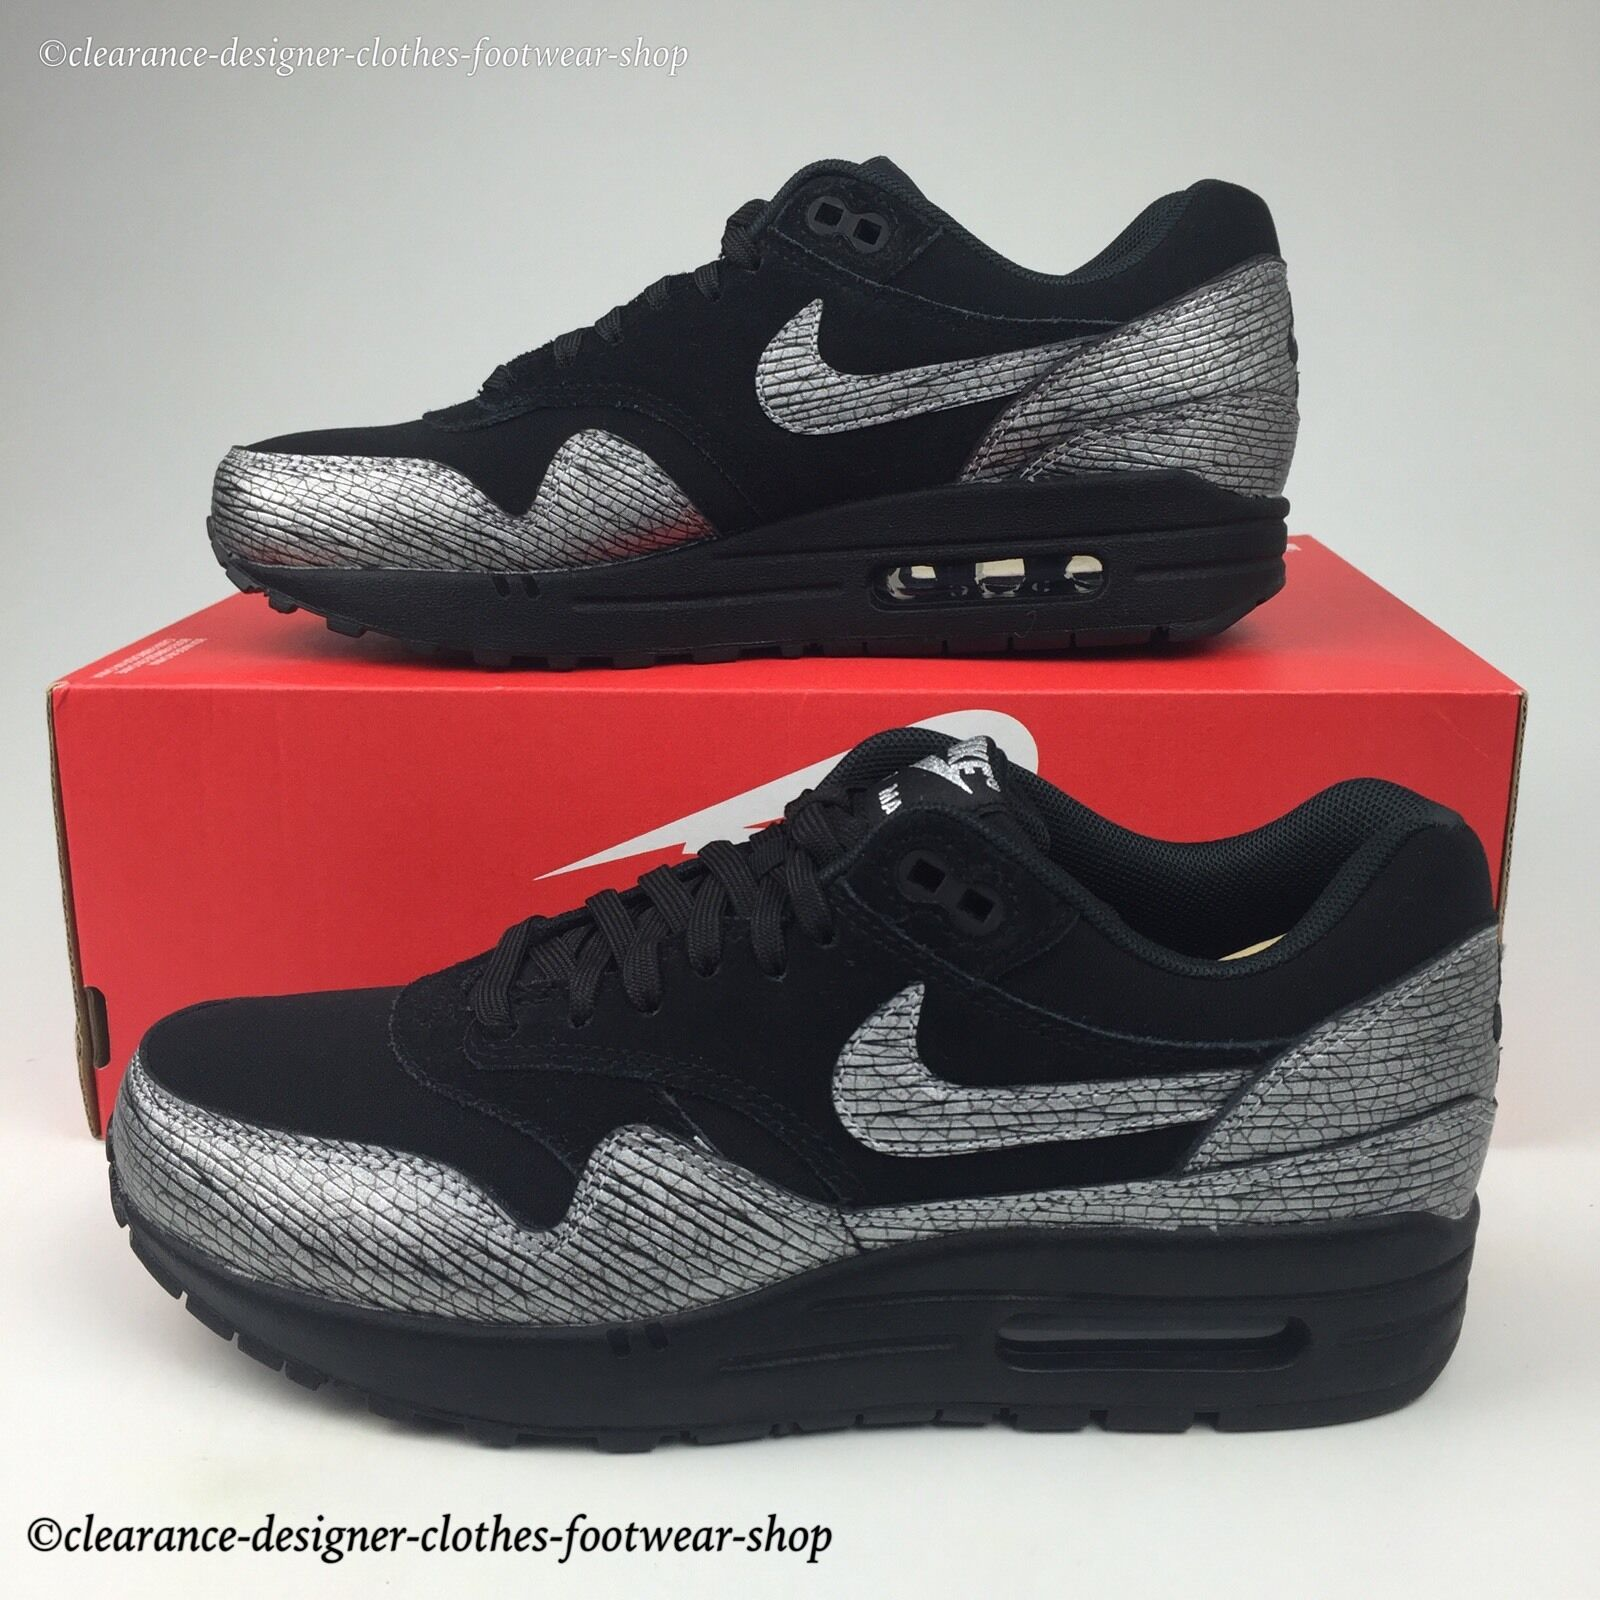 NIKE AIR MAX 1 PREMIUM PREMIUM PREMIUM TRAINERS Femme GIRLS LADIES CASUAL chaussures5  125 d7664a